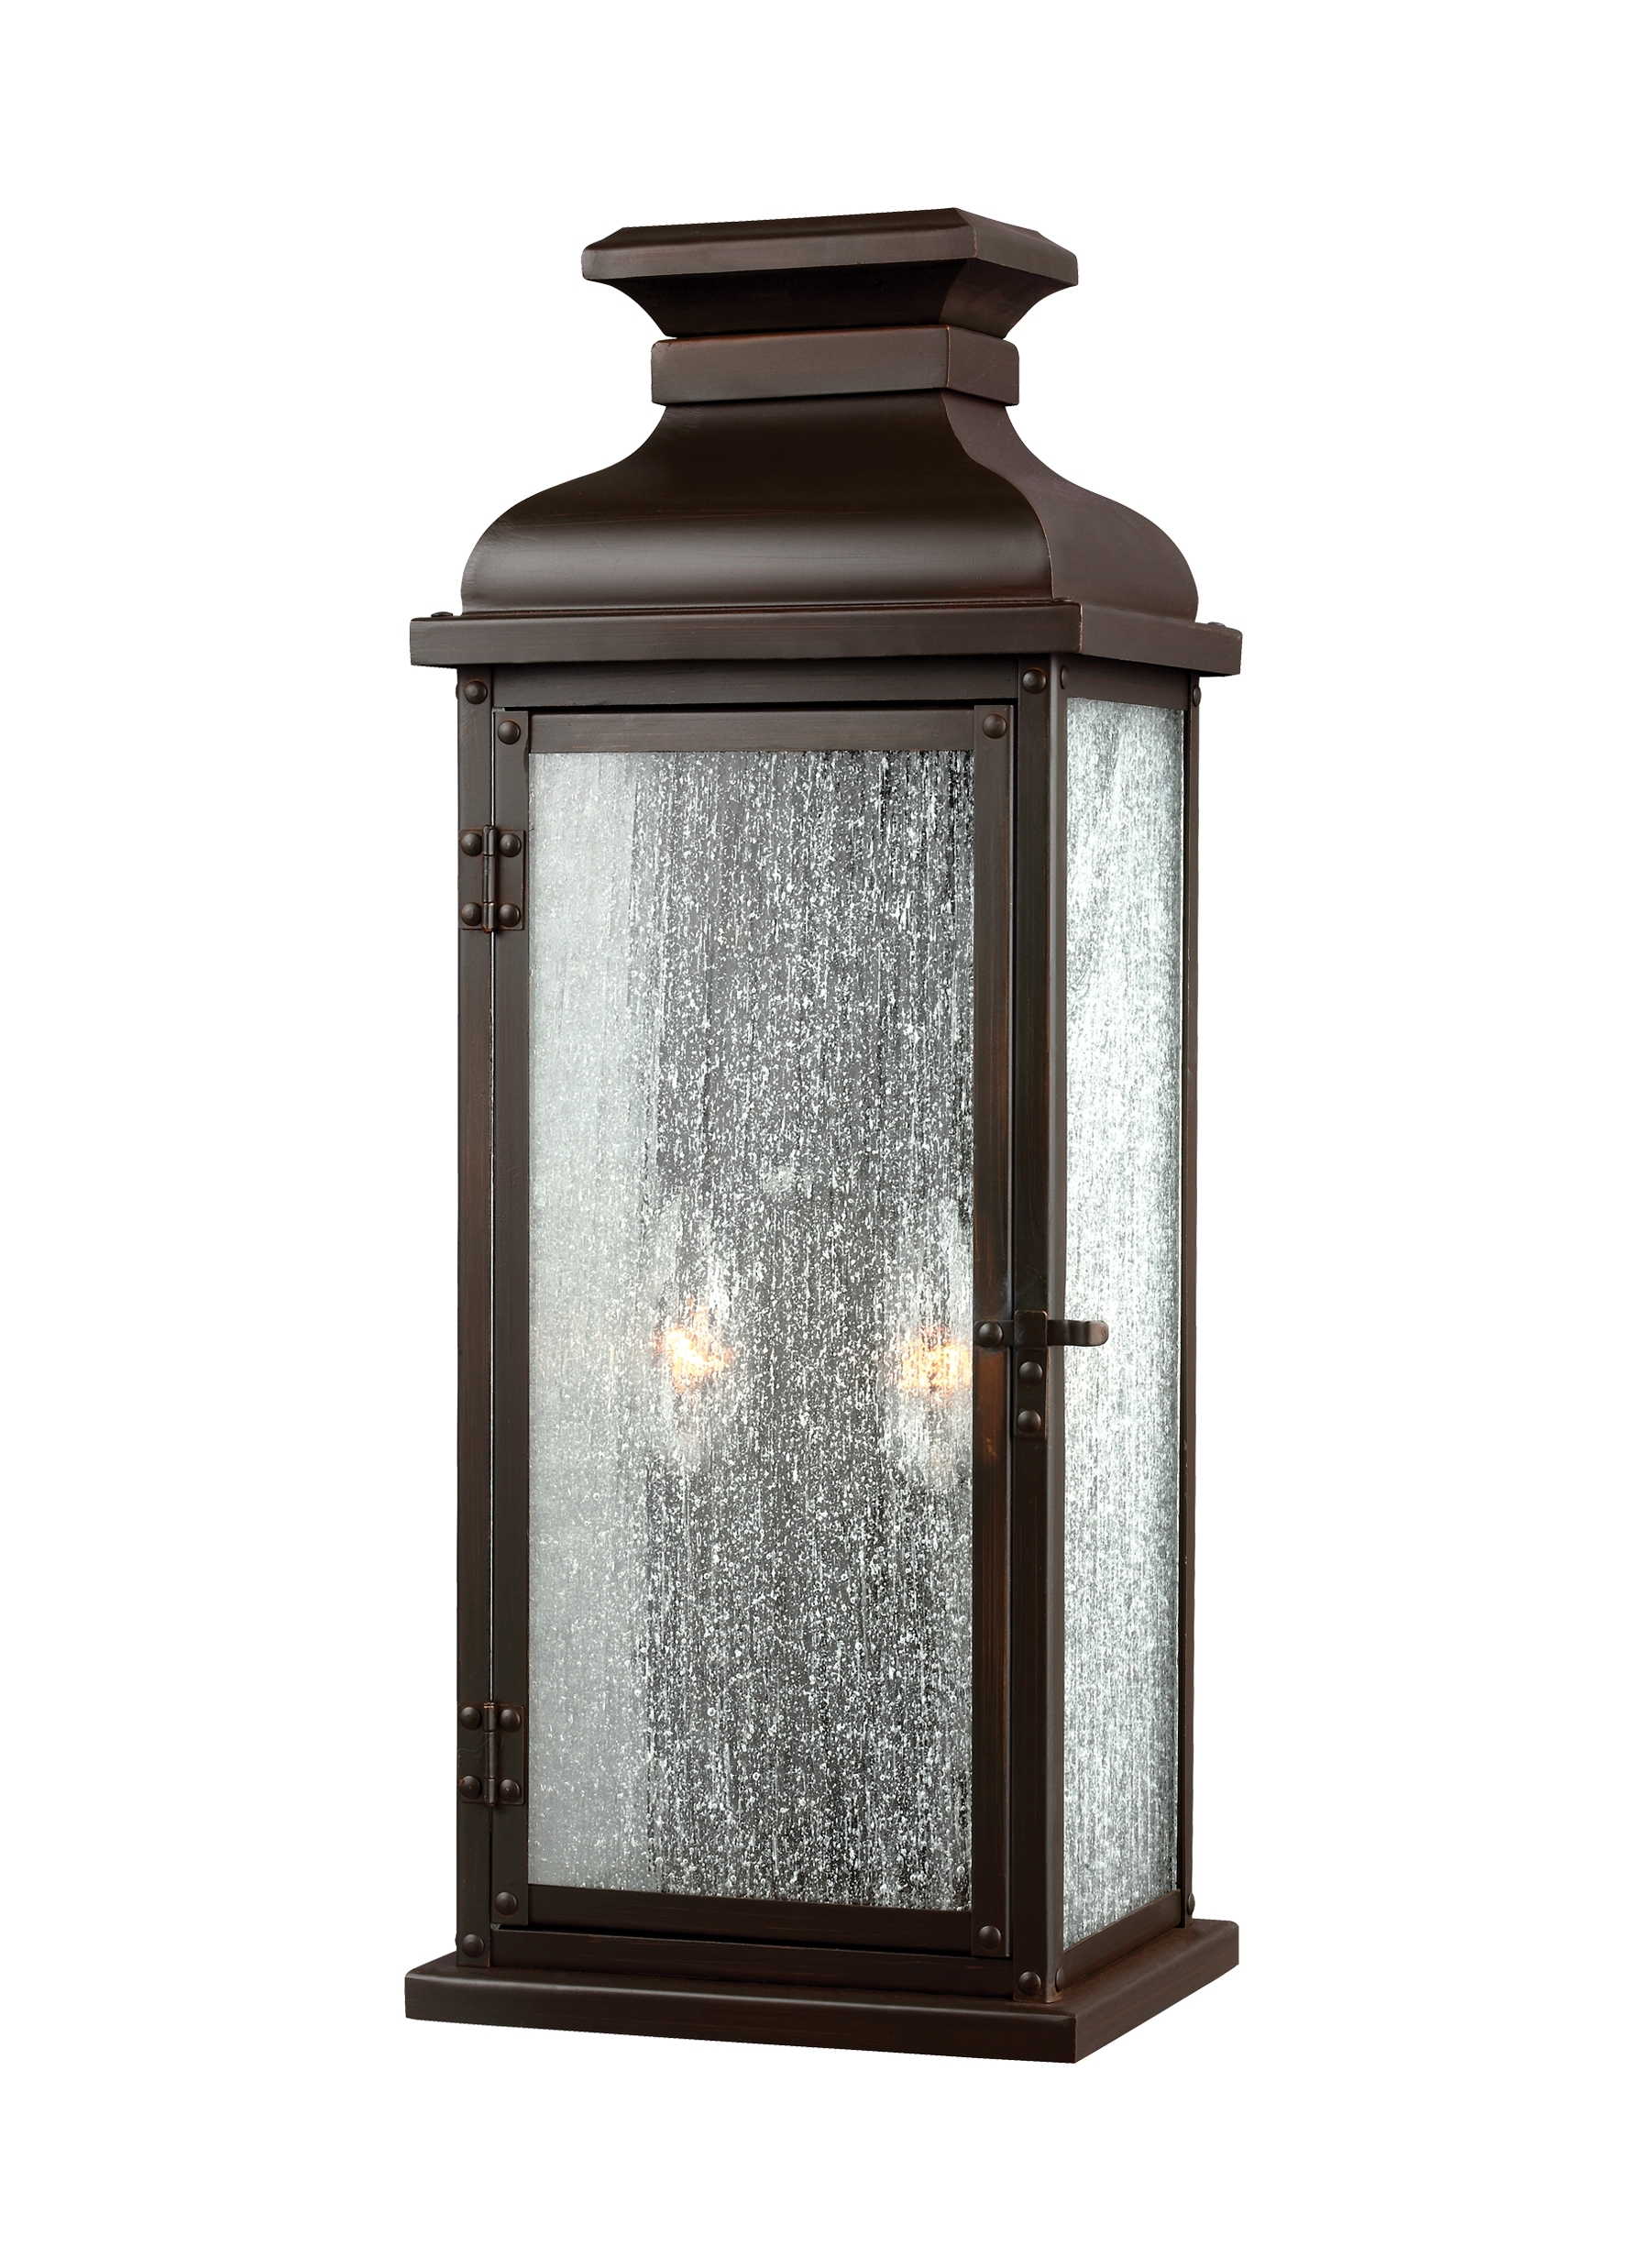 Famous Ol11101Dac,2 – Light Outdoor Sconce,dark Aged Copper In Italian Outdoor Lanterns (View 5 of 20)